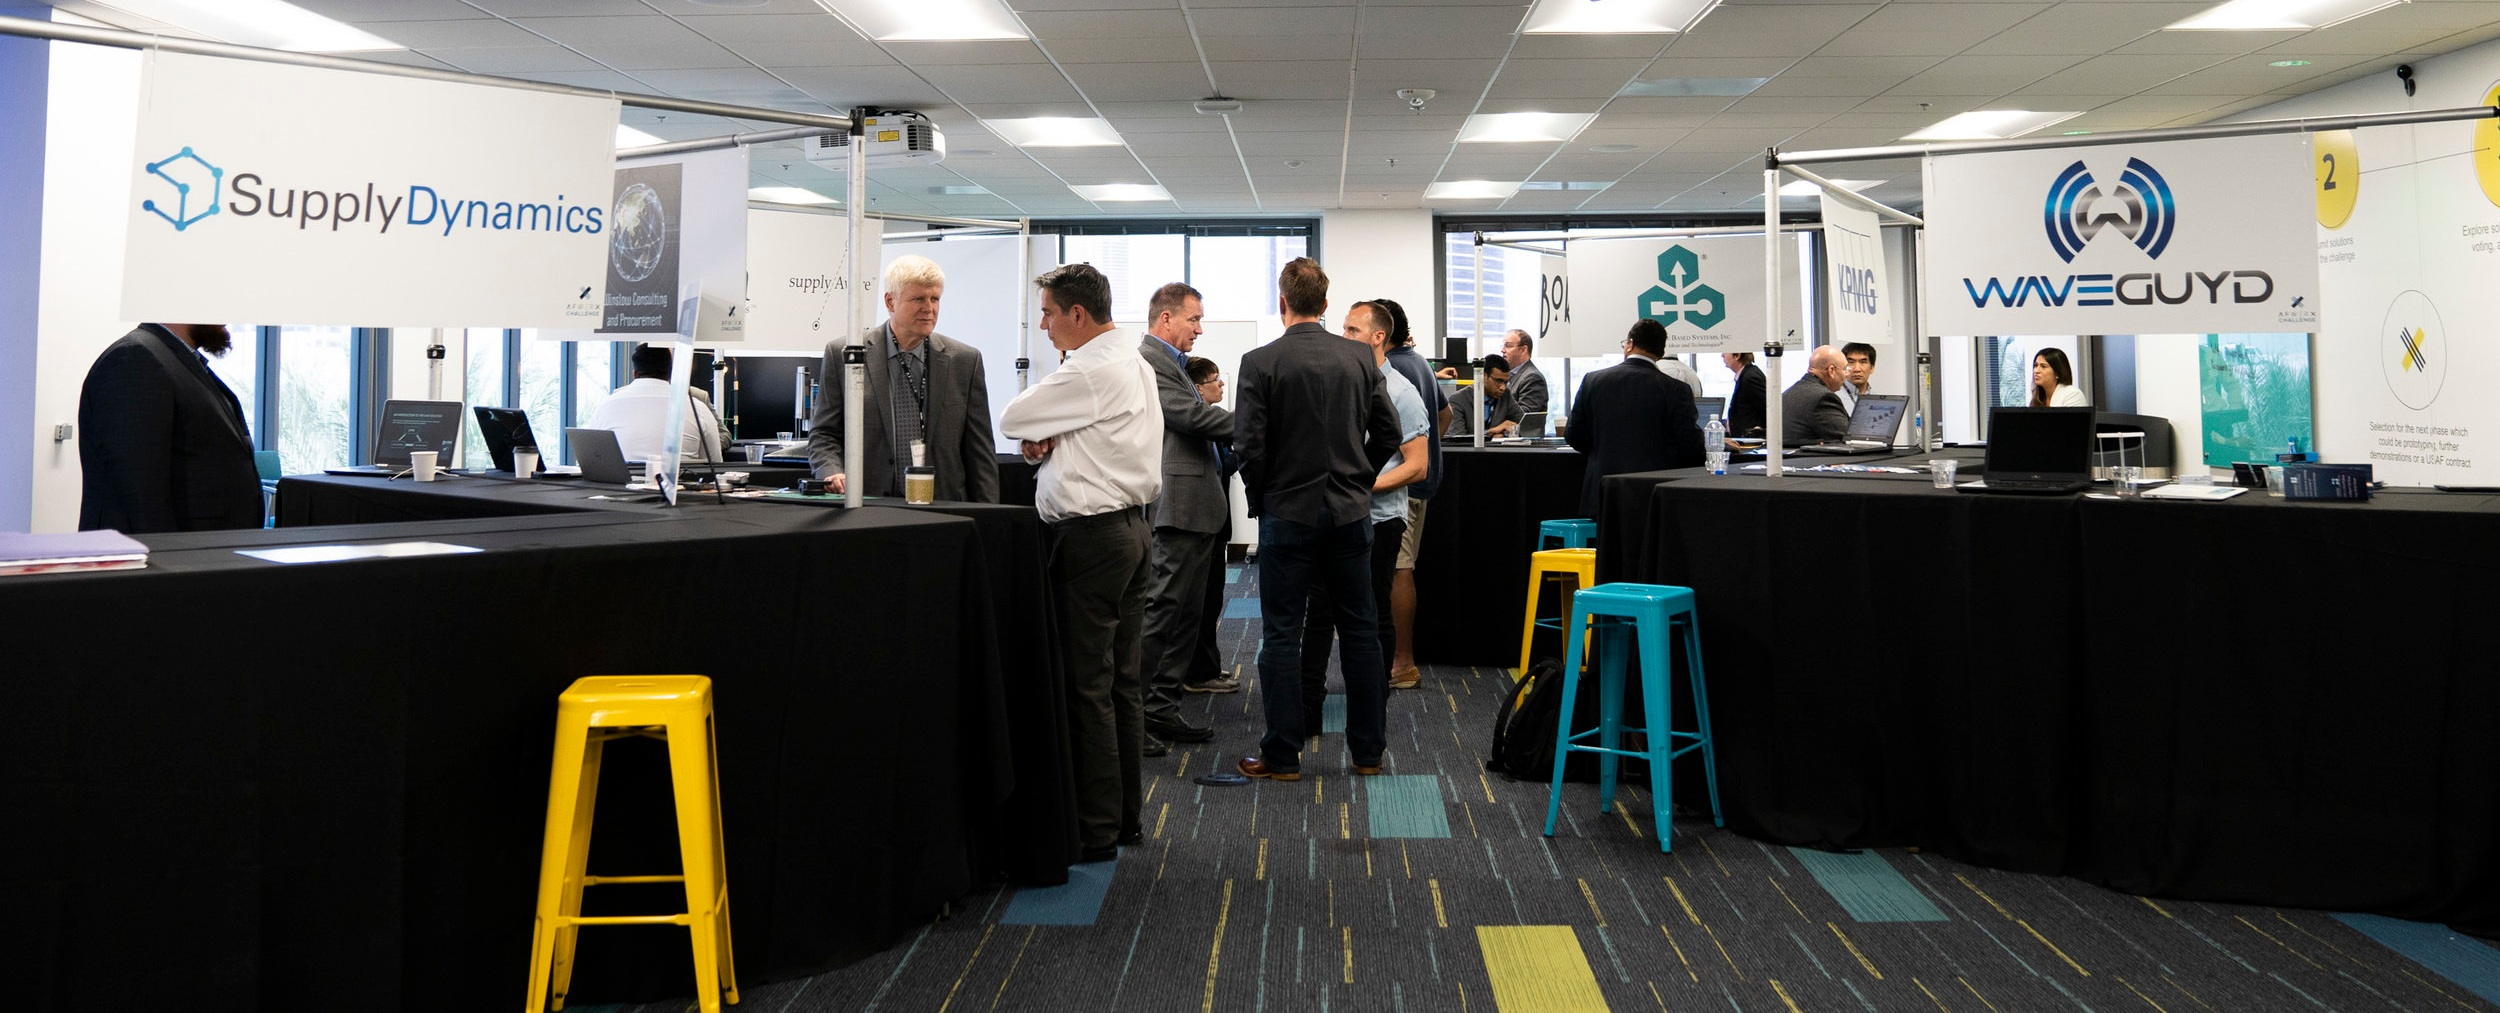 More than 20 vendors participated in showcase challenge event held May 29-30 at the AFWERX Vegas Innovation Hub. The first day consisted of informal tabletop exhibits along with private pitch sessions, during which participants were also encouraged to seek out opportunities for potential collaboration. Photo by AFWERX Vegas